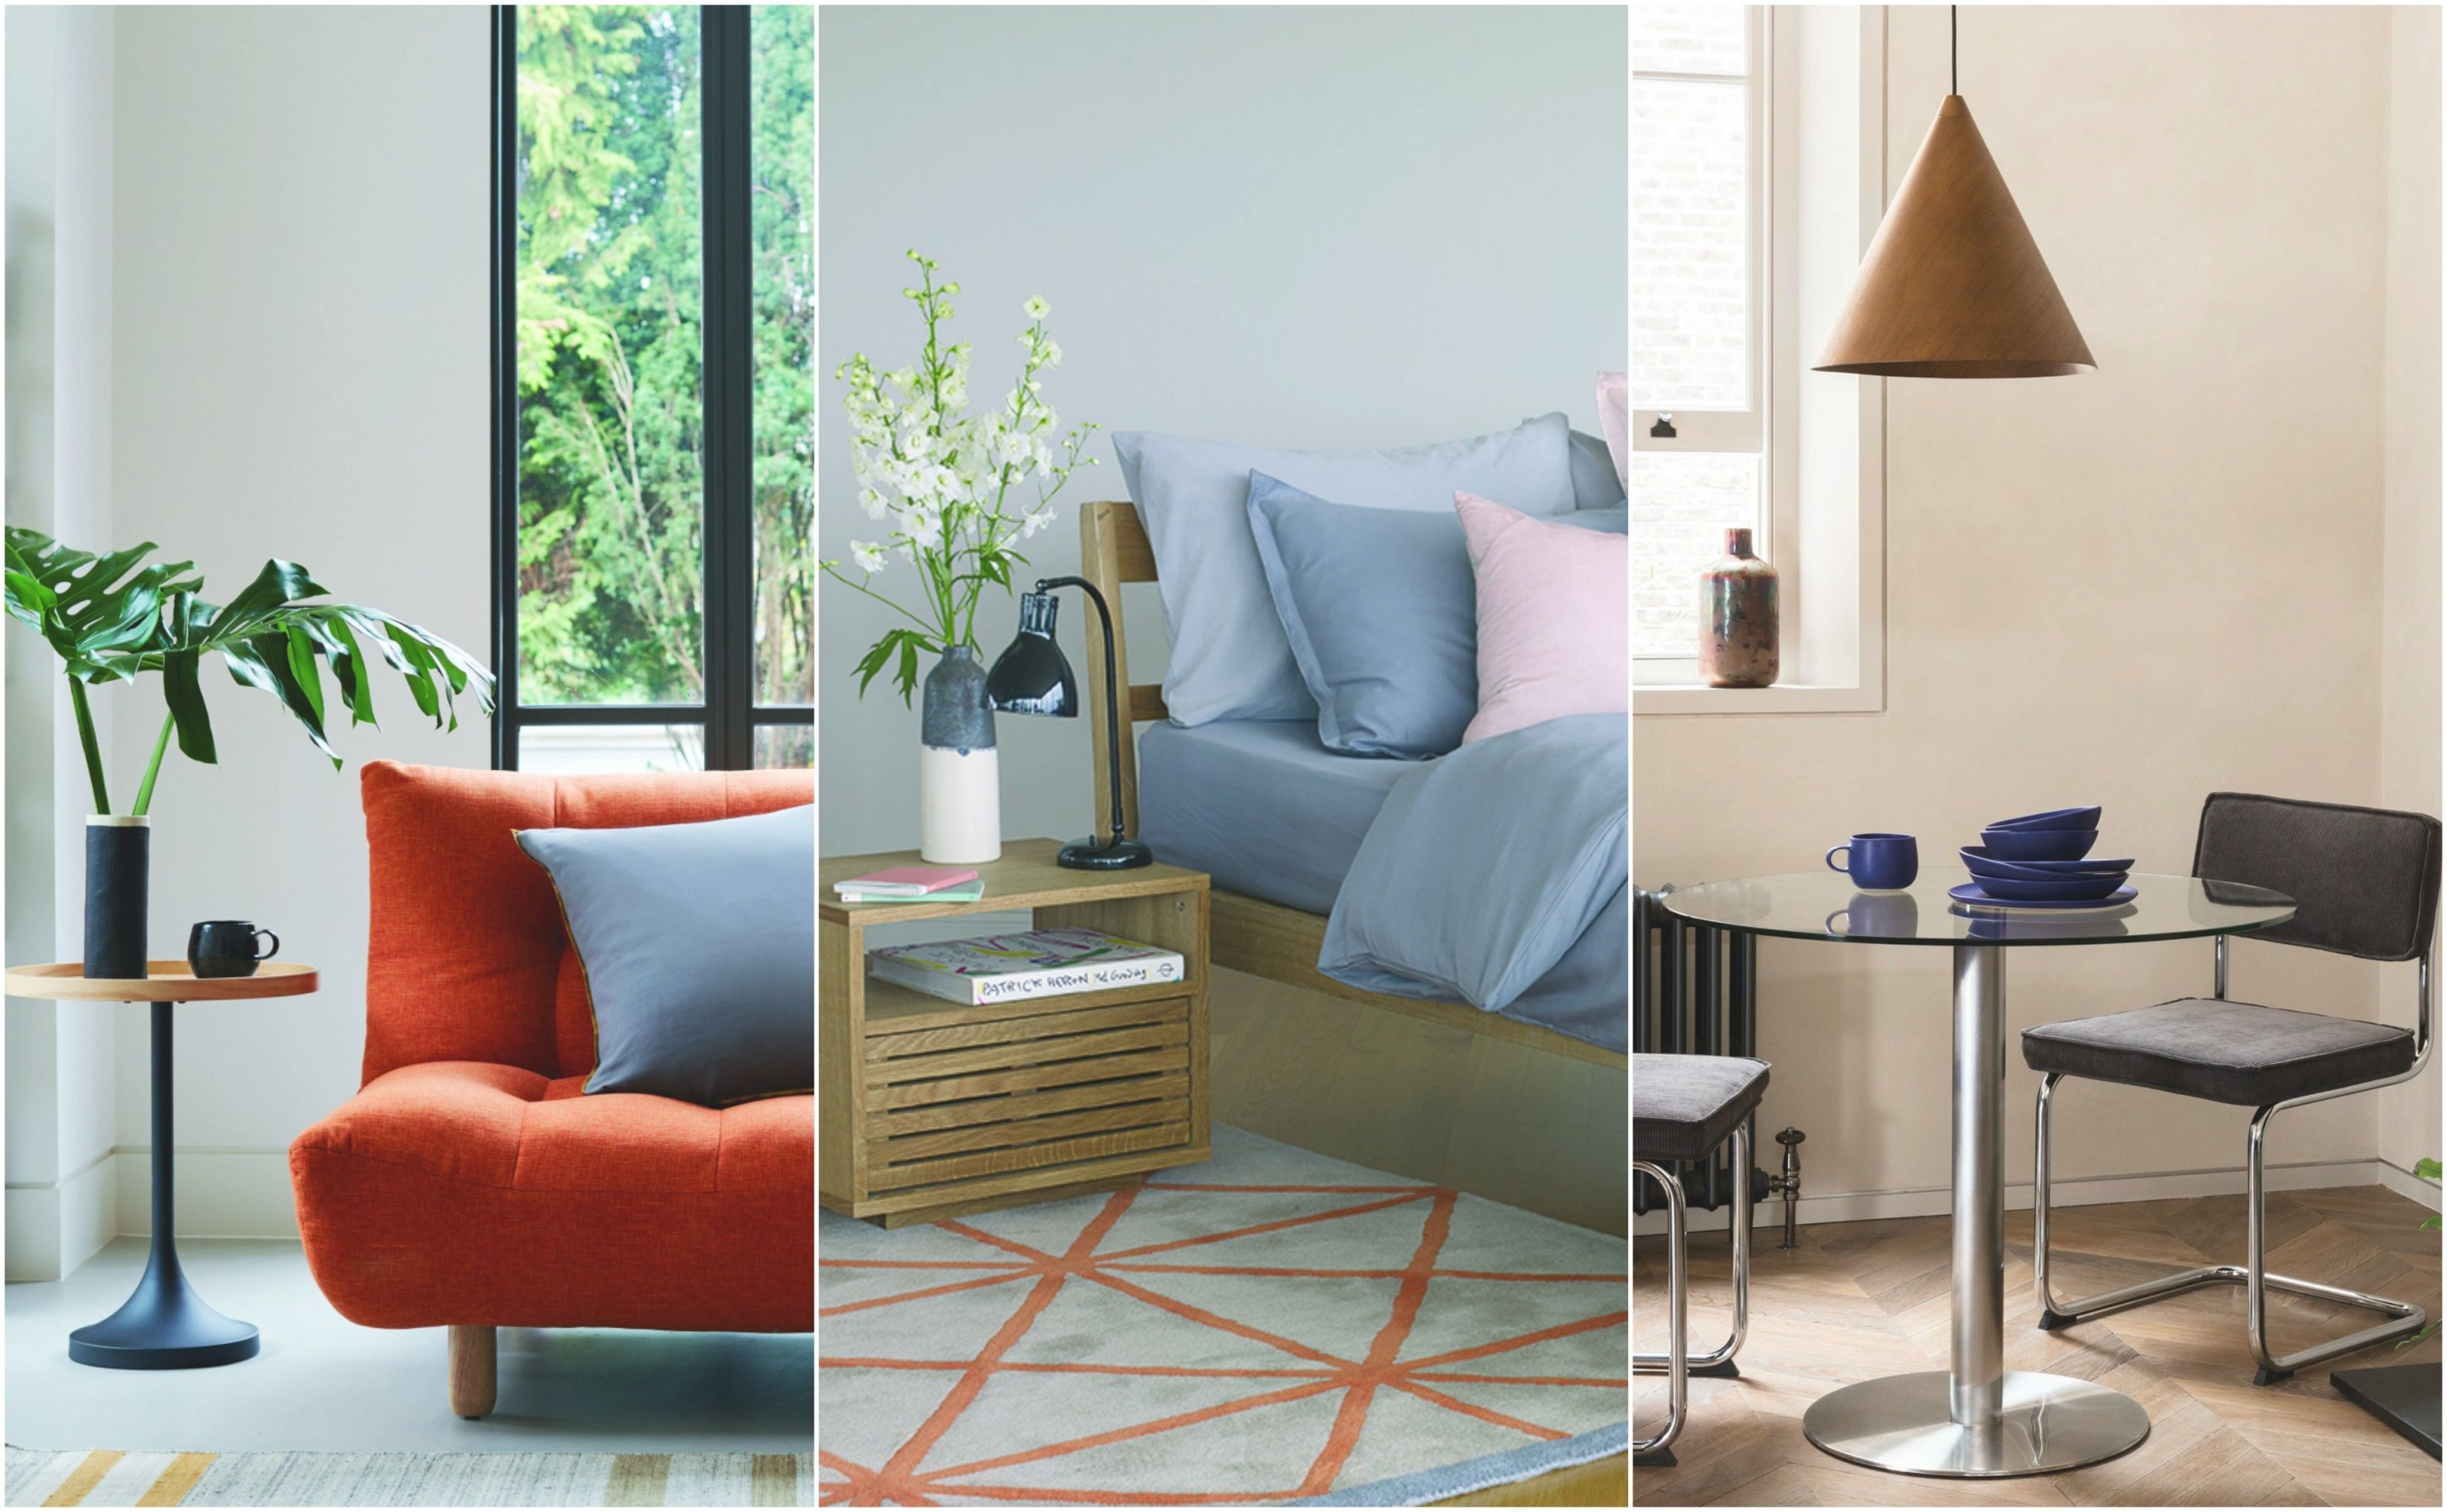 Small Room Ideas - Small Space Living Hacks intended for Awesome Small Space Living Room Furniture